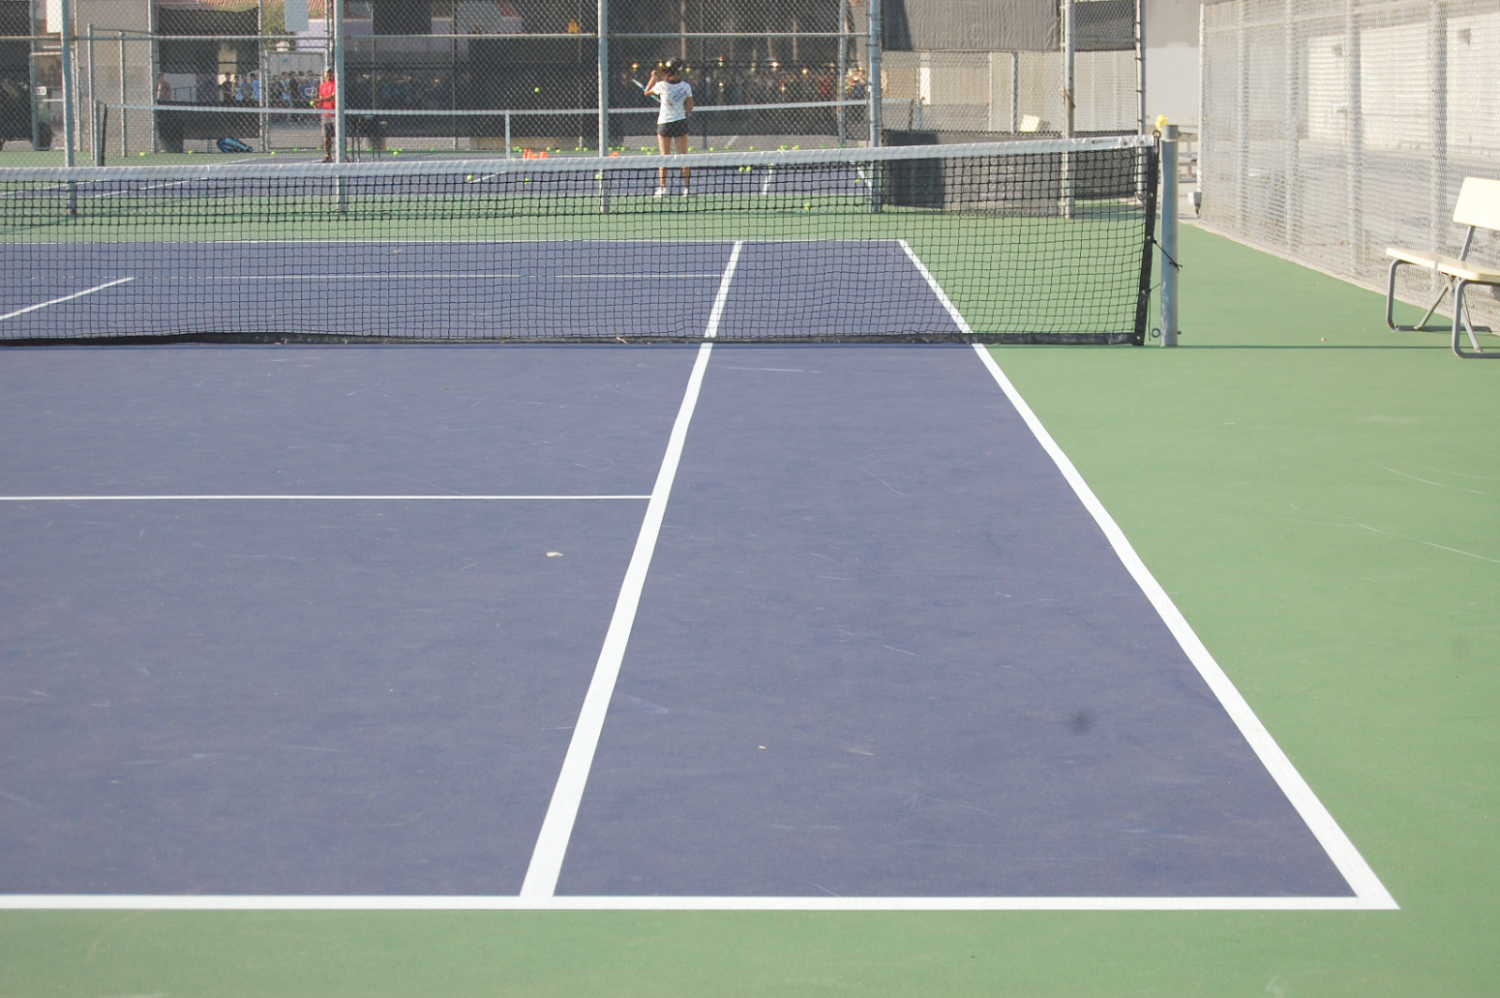 Tennis was not affected by the court renovations finished in the summer.